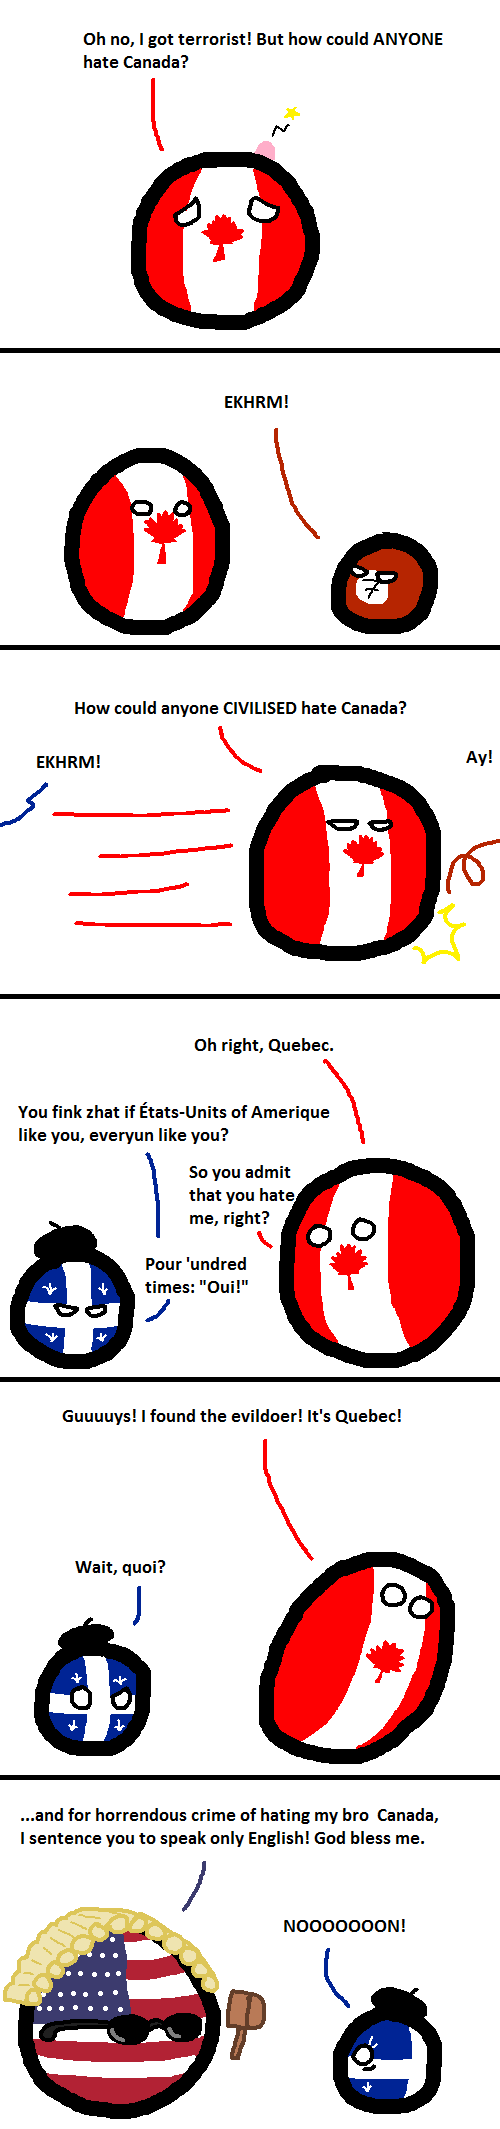 Comic about Canada